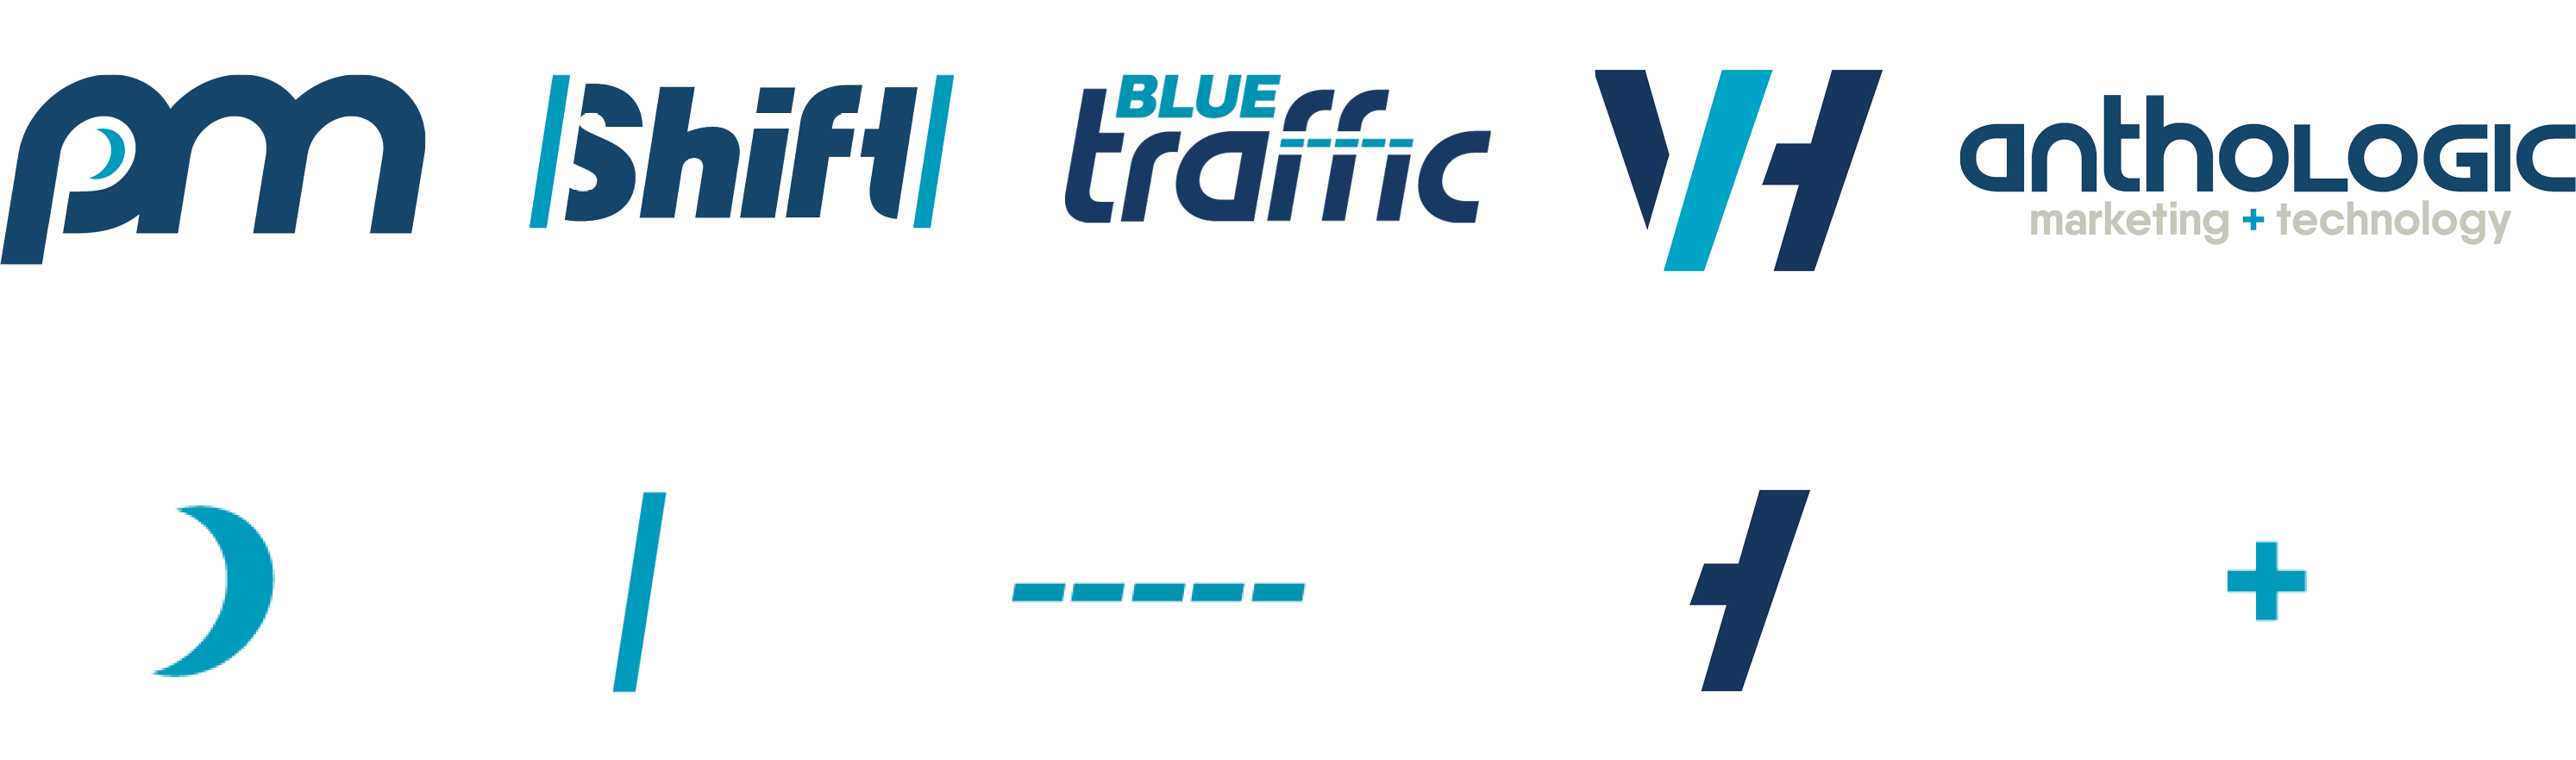 Compilation of the Anthologic logos and logo elements. PM, Shift, Blue Traffic, and Vector Haus.